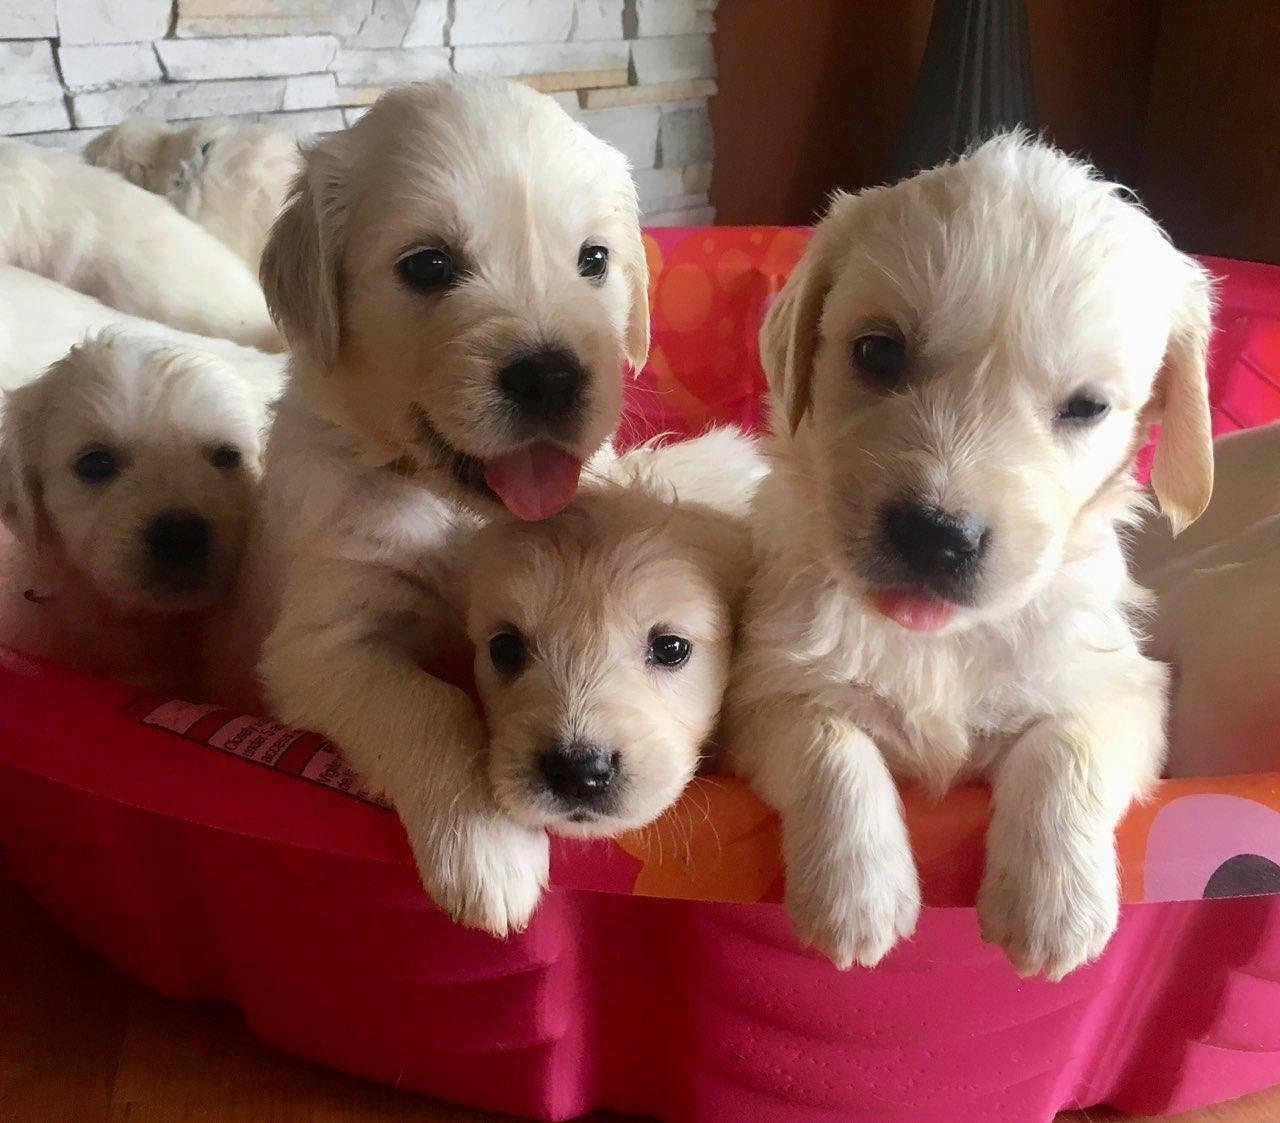 Four Viking Pups strike a pose.